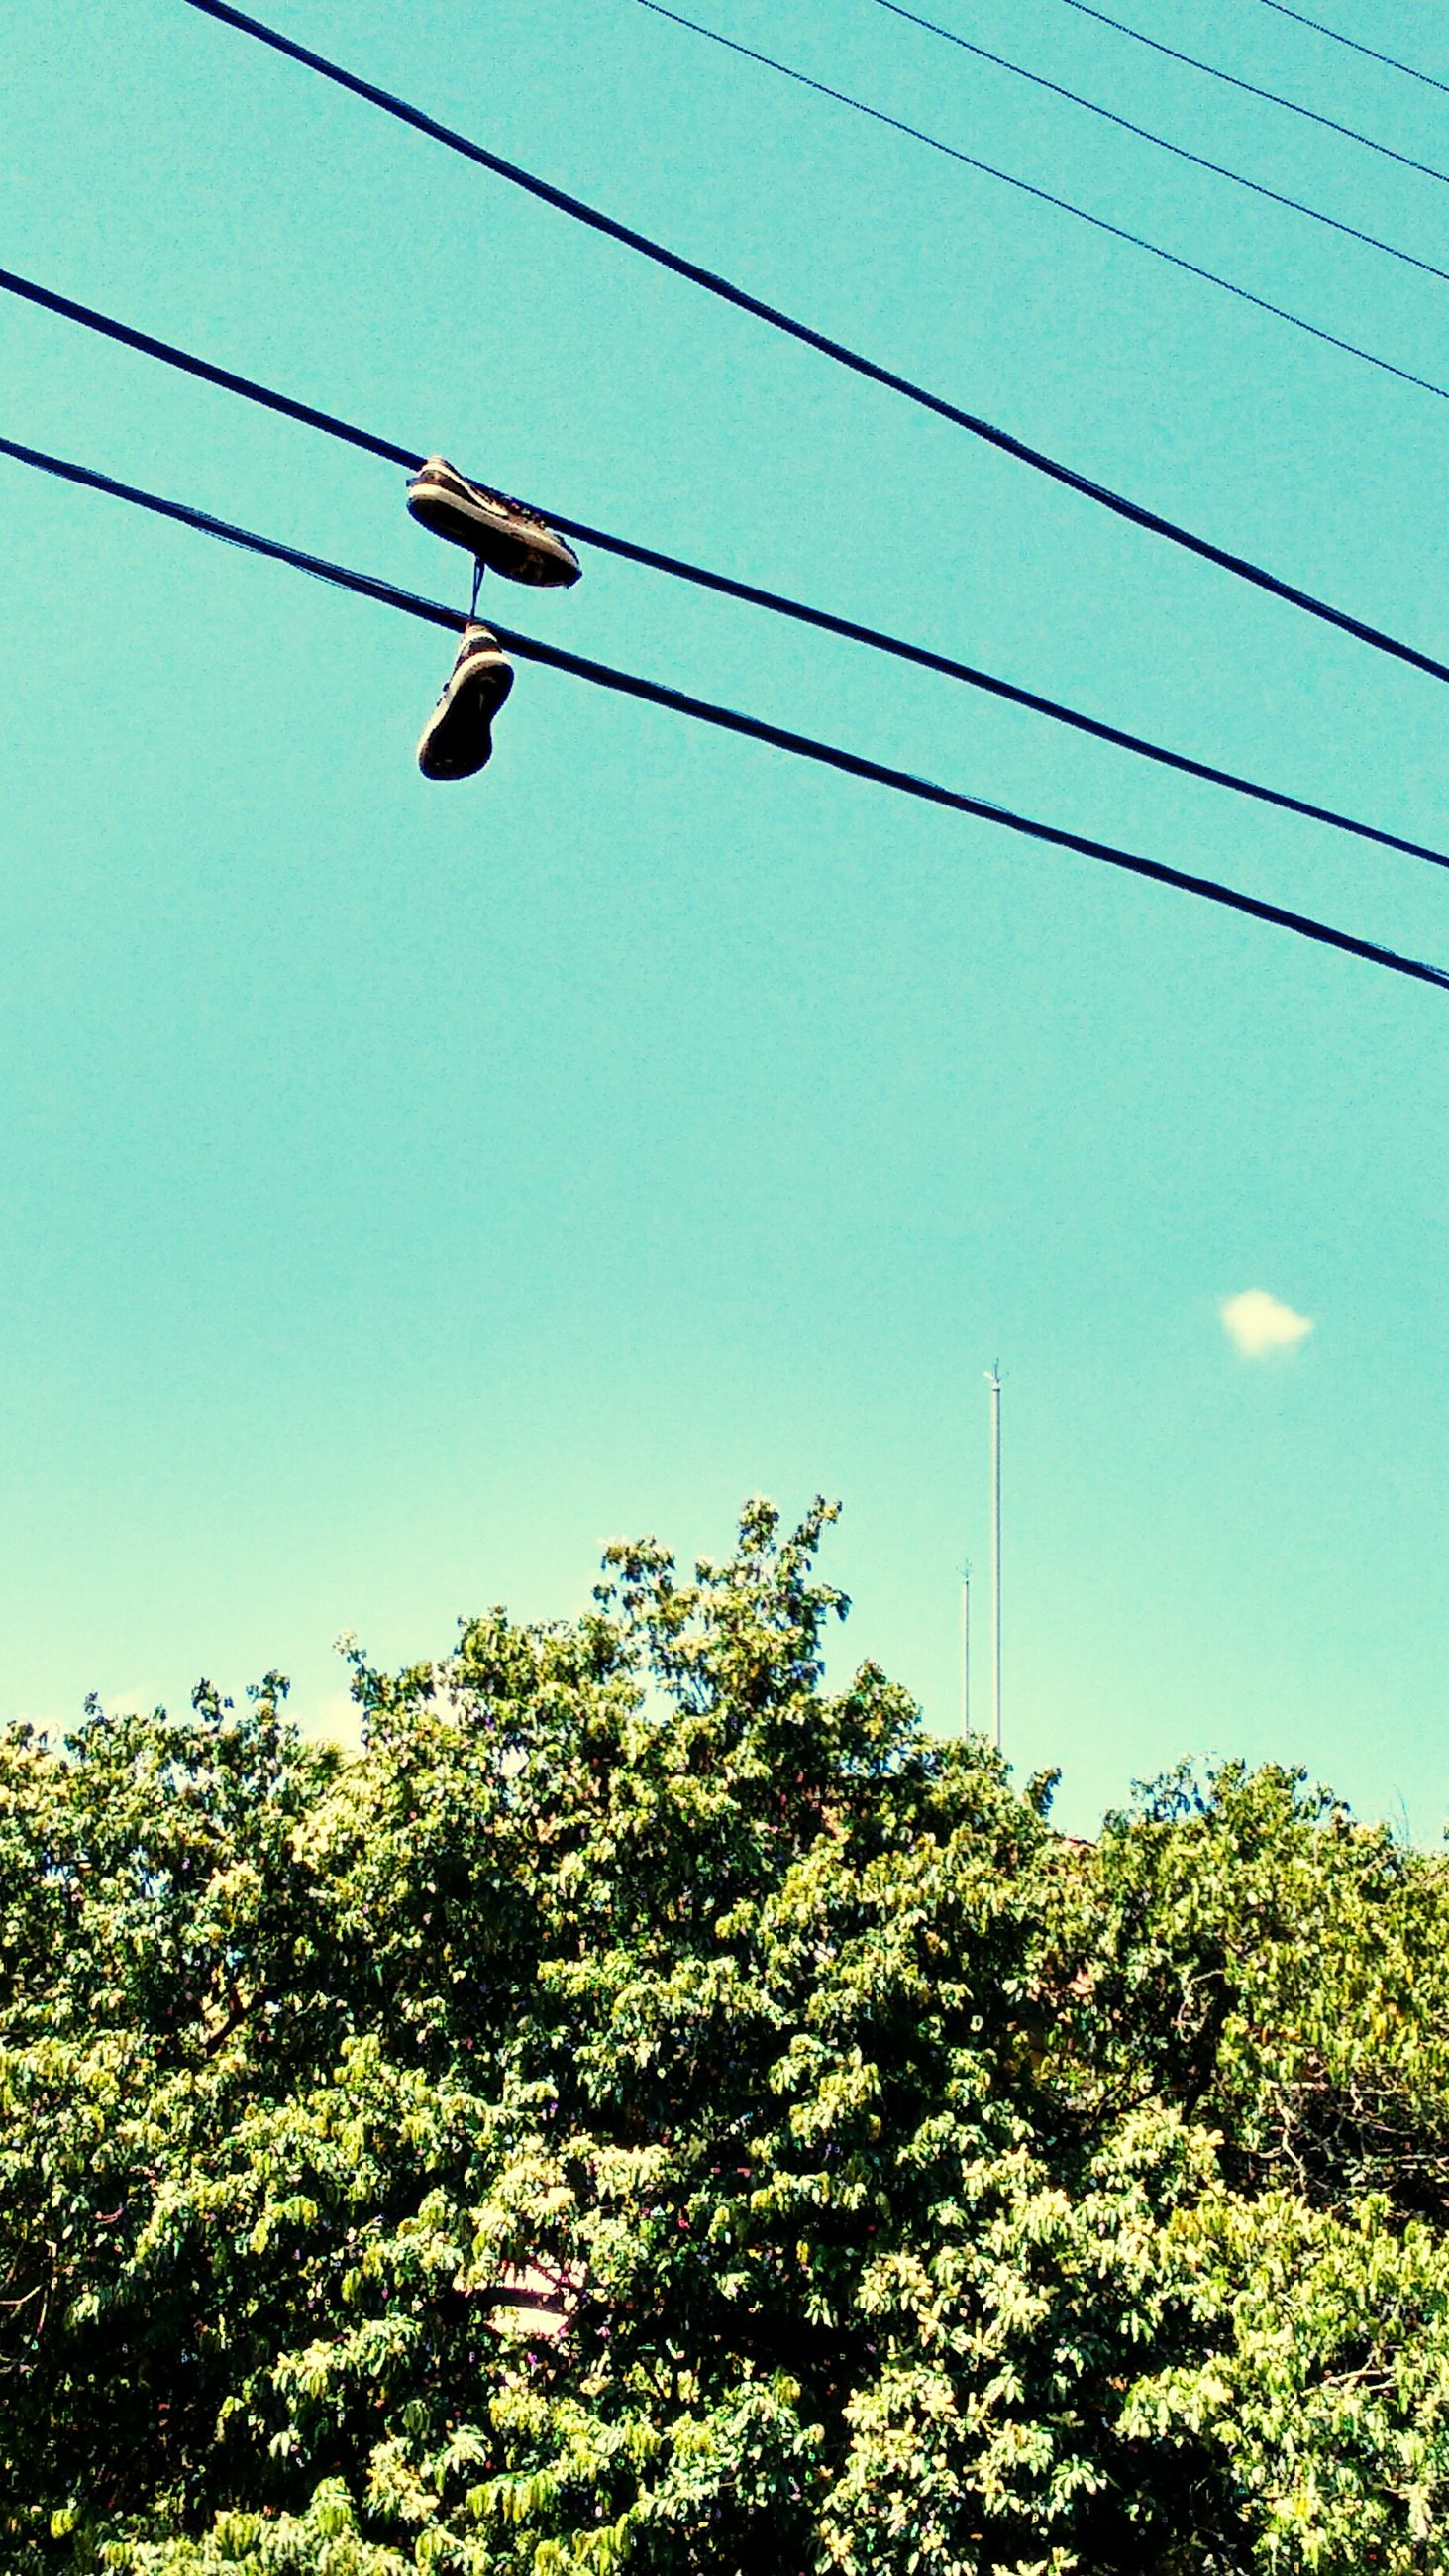 power line, low angle view, cable, electricity, electricity pylon, power supply, clear sky, tree, power cable, fuel and power generation, street light, connection, technology, sky, blue, lighting equipment, growth, day, green color, transportation